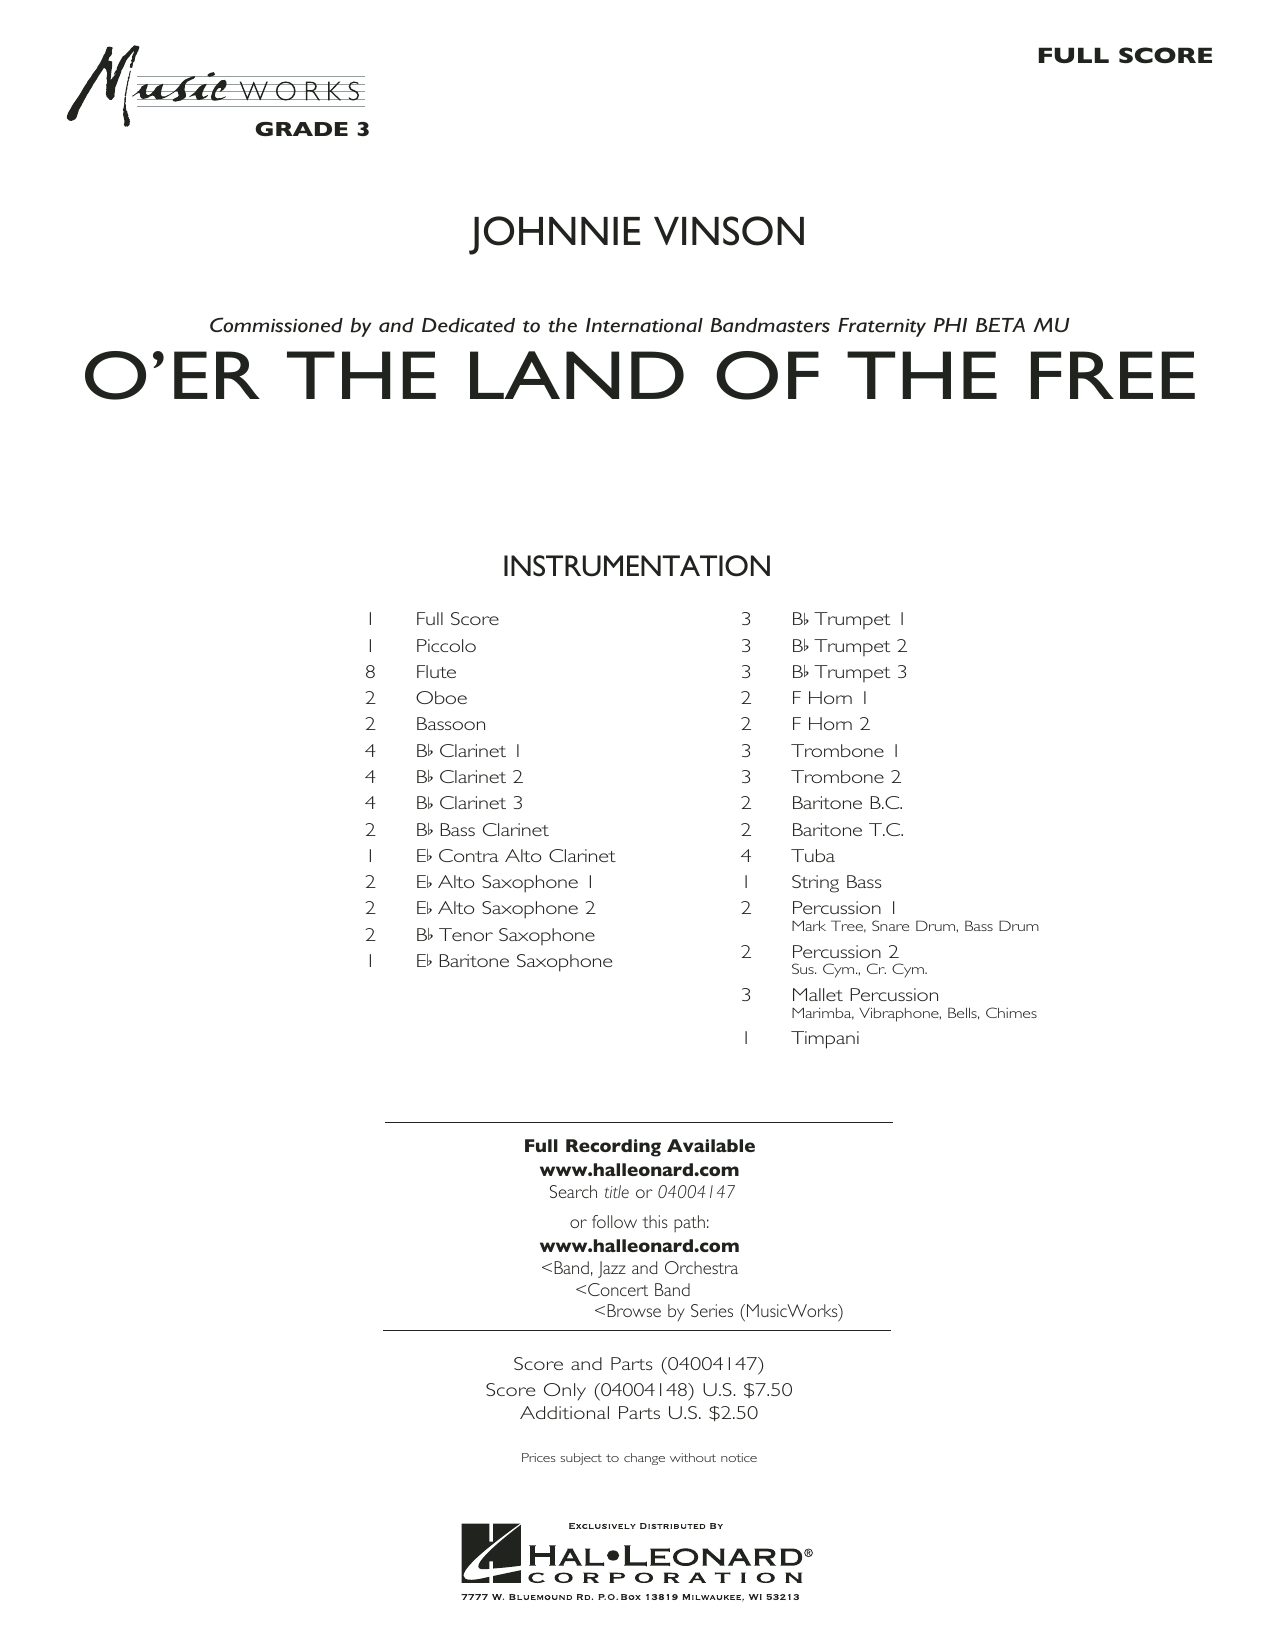 O'er the Land of the Free (COMPLETE) sheet music for concert band by Johnnie Vinson